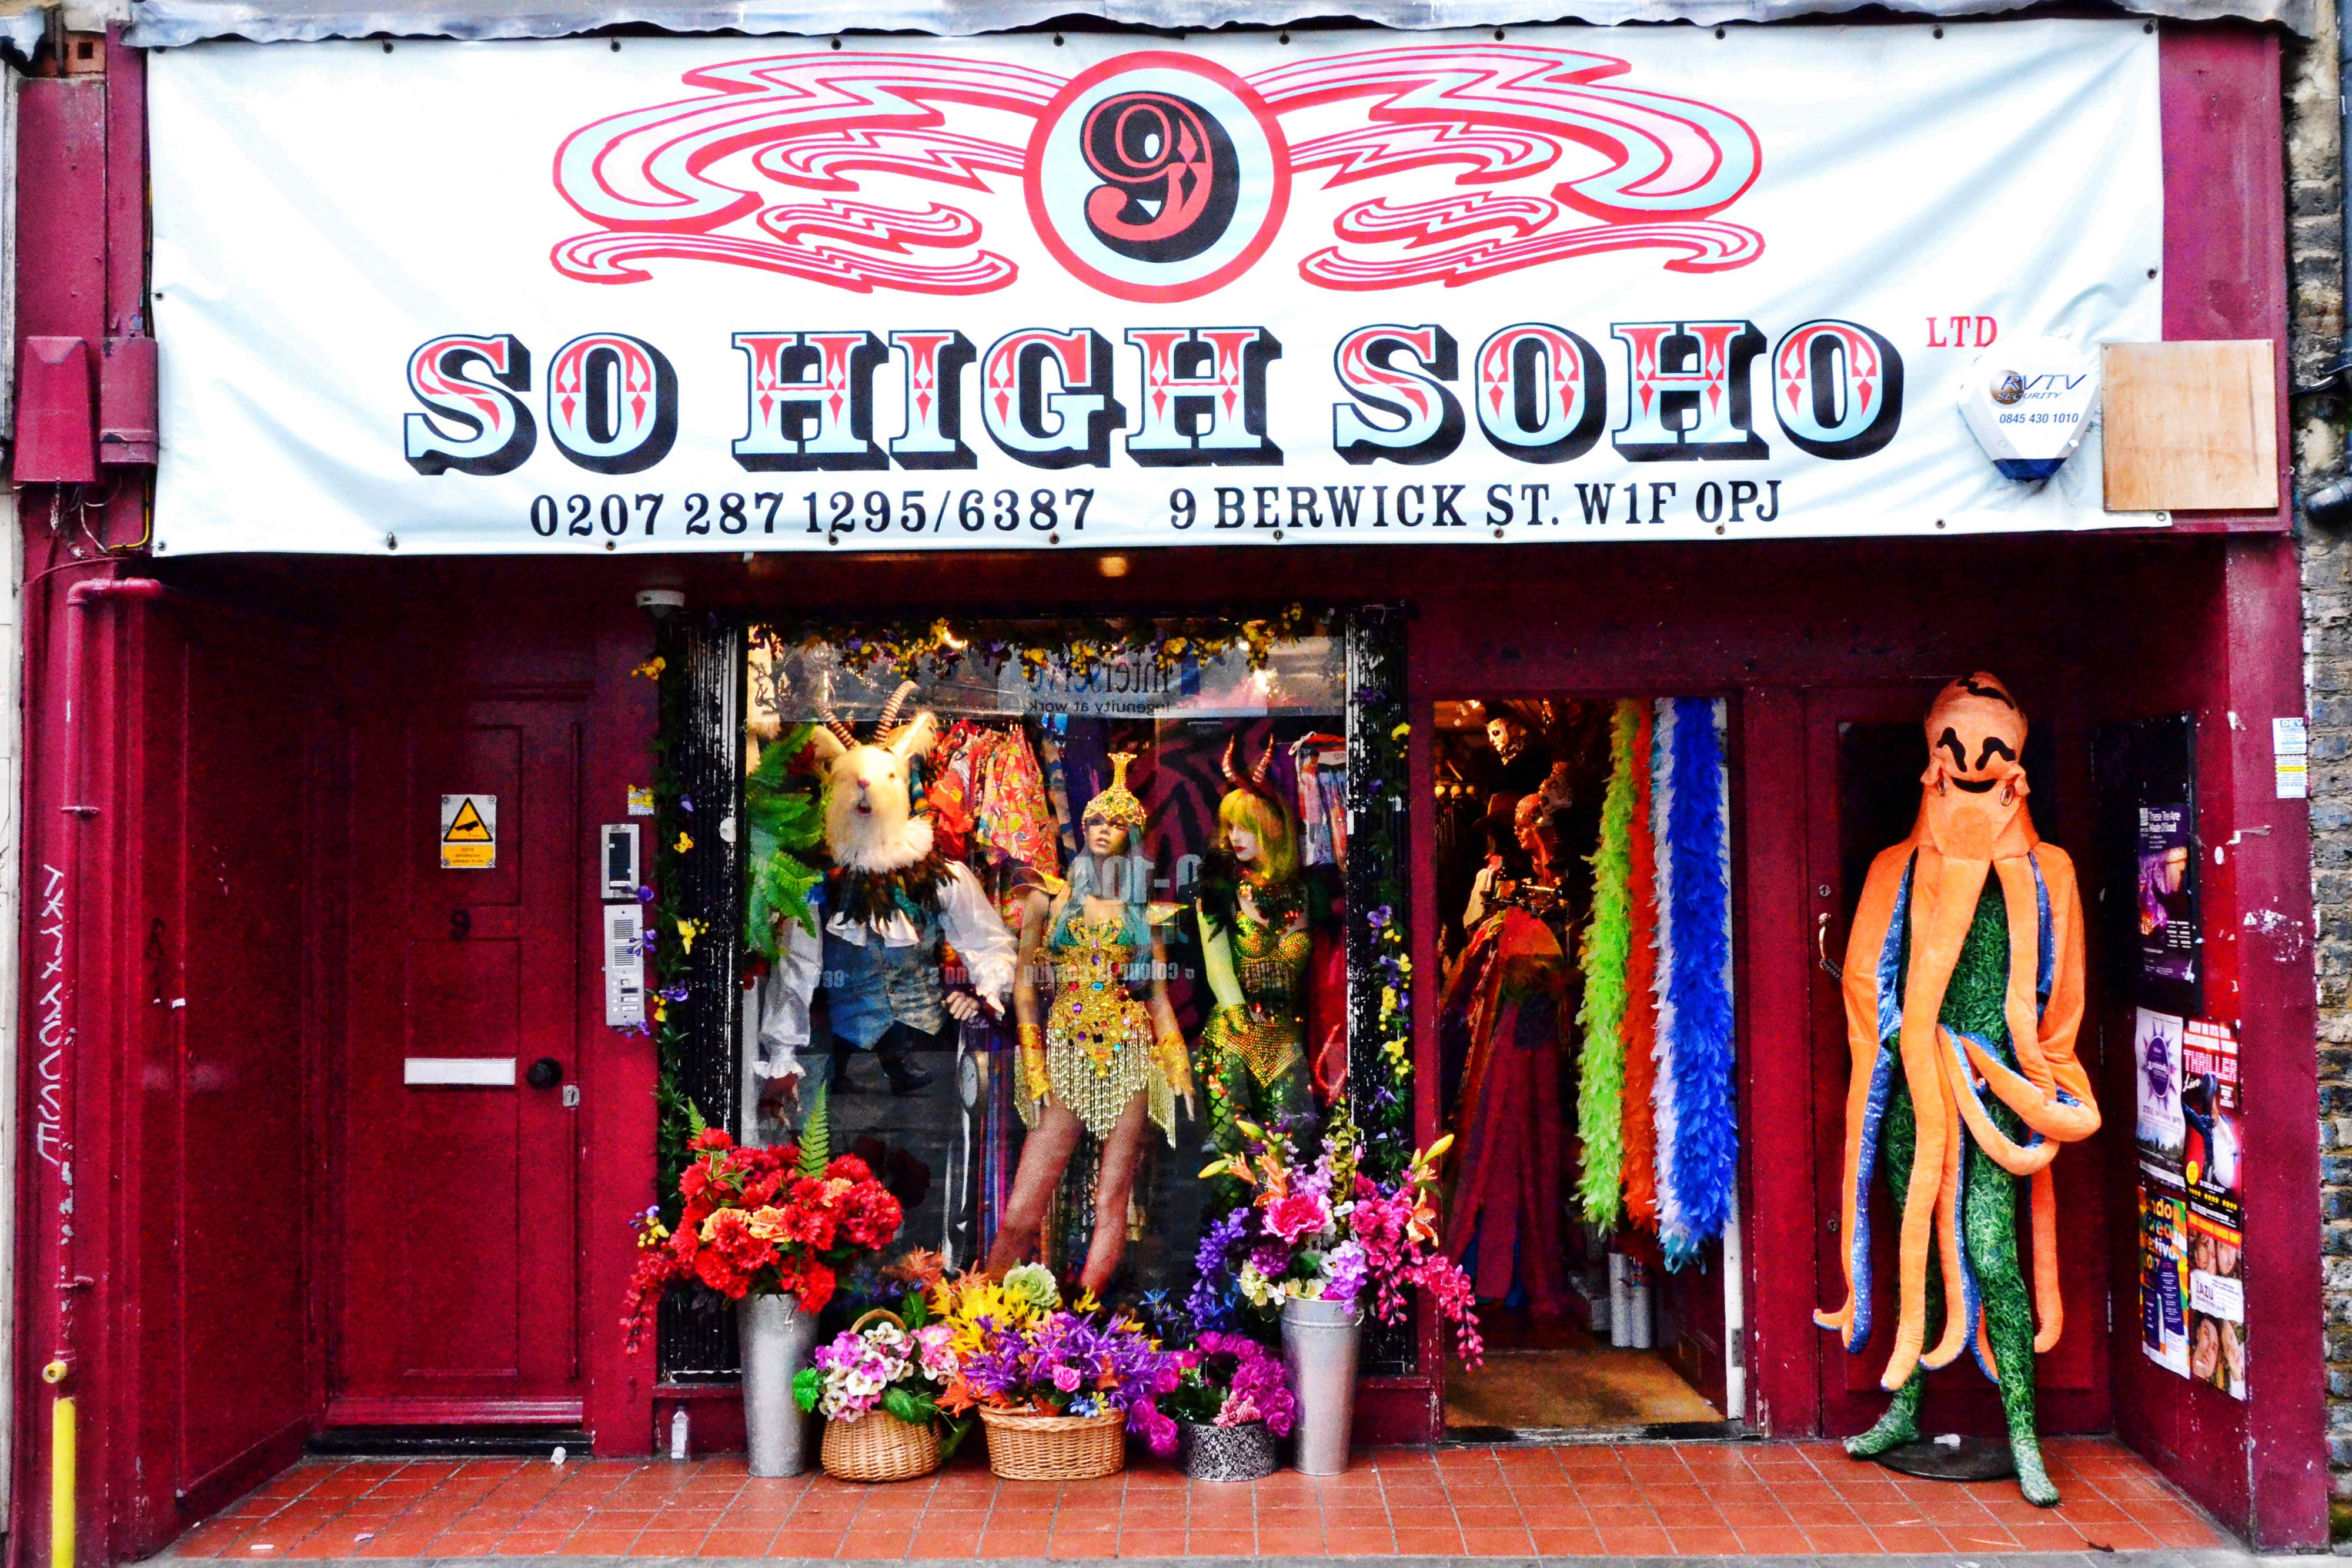 Fancy dress shop in Soho